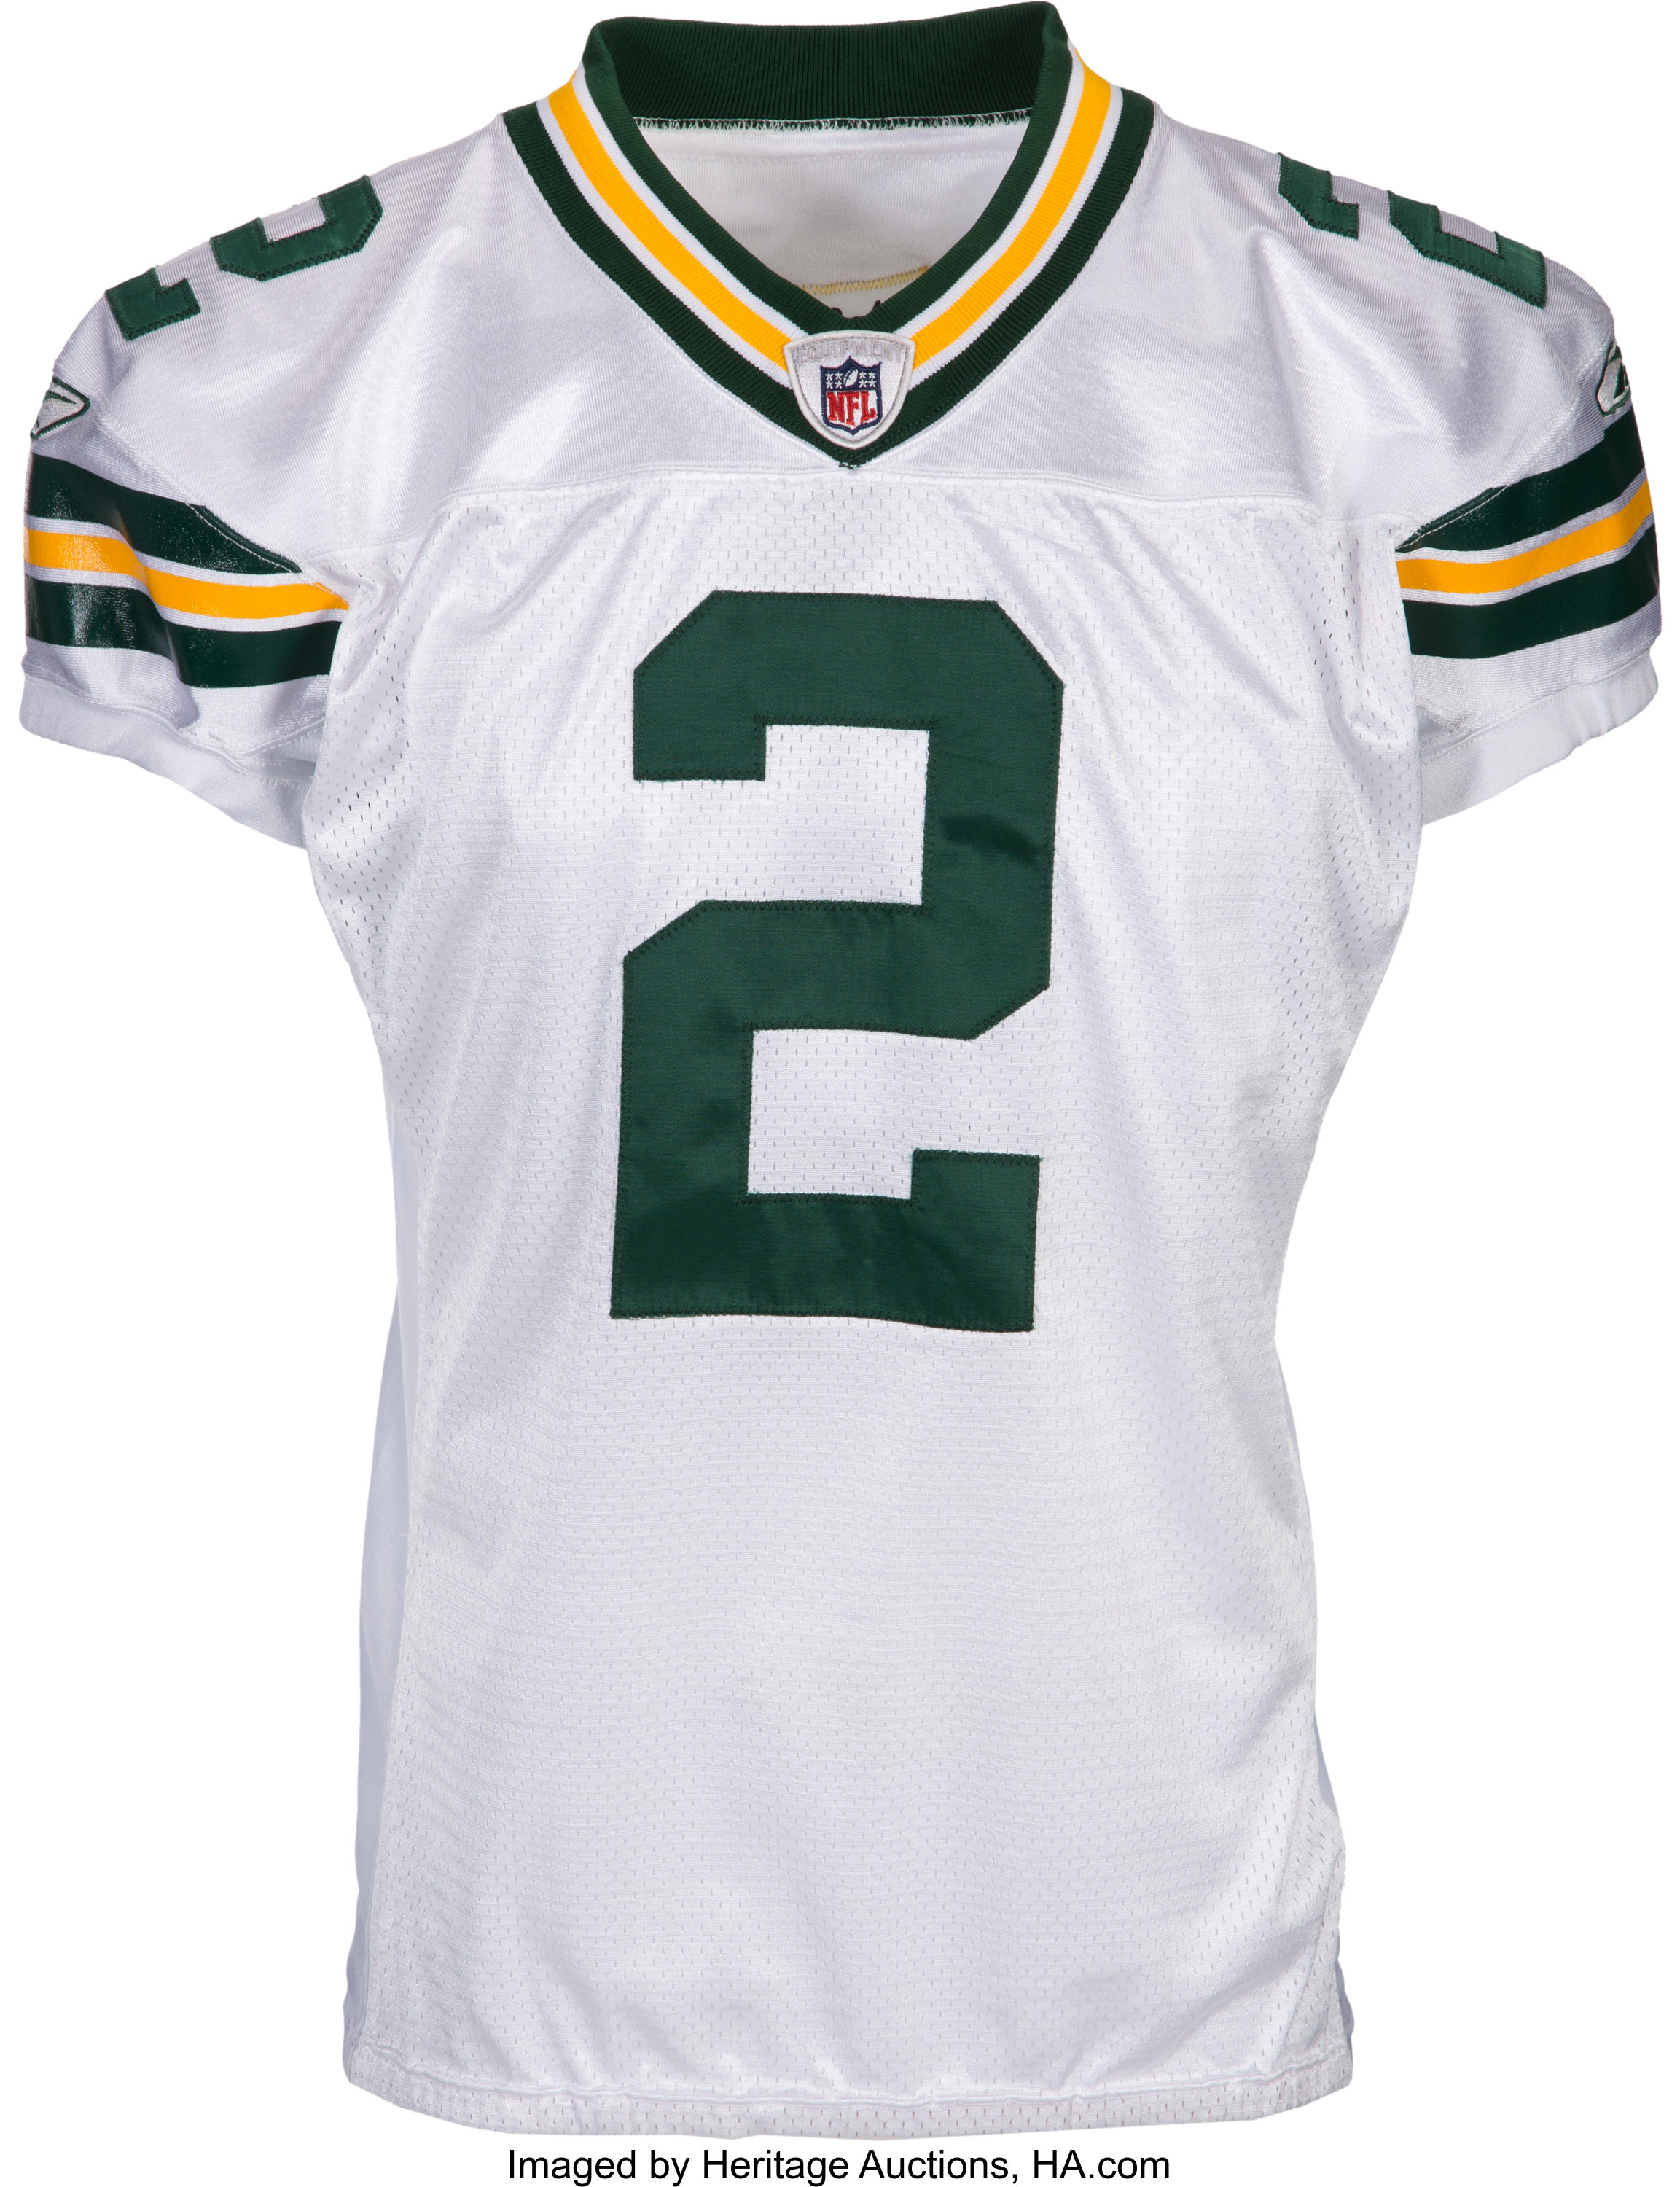 2008 Mason Crosby Game Worn & Signed Green Bay Packers Jersey ...